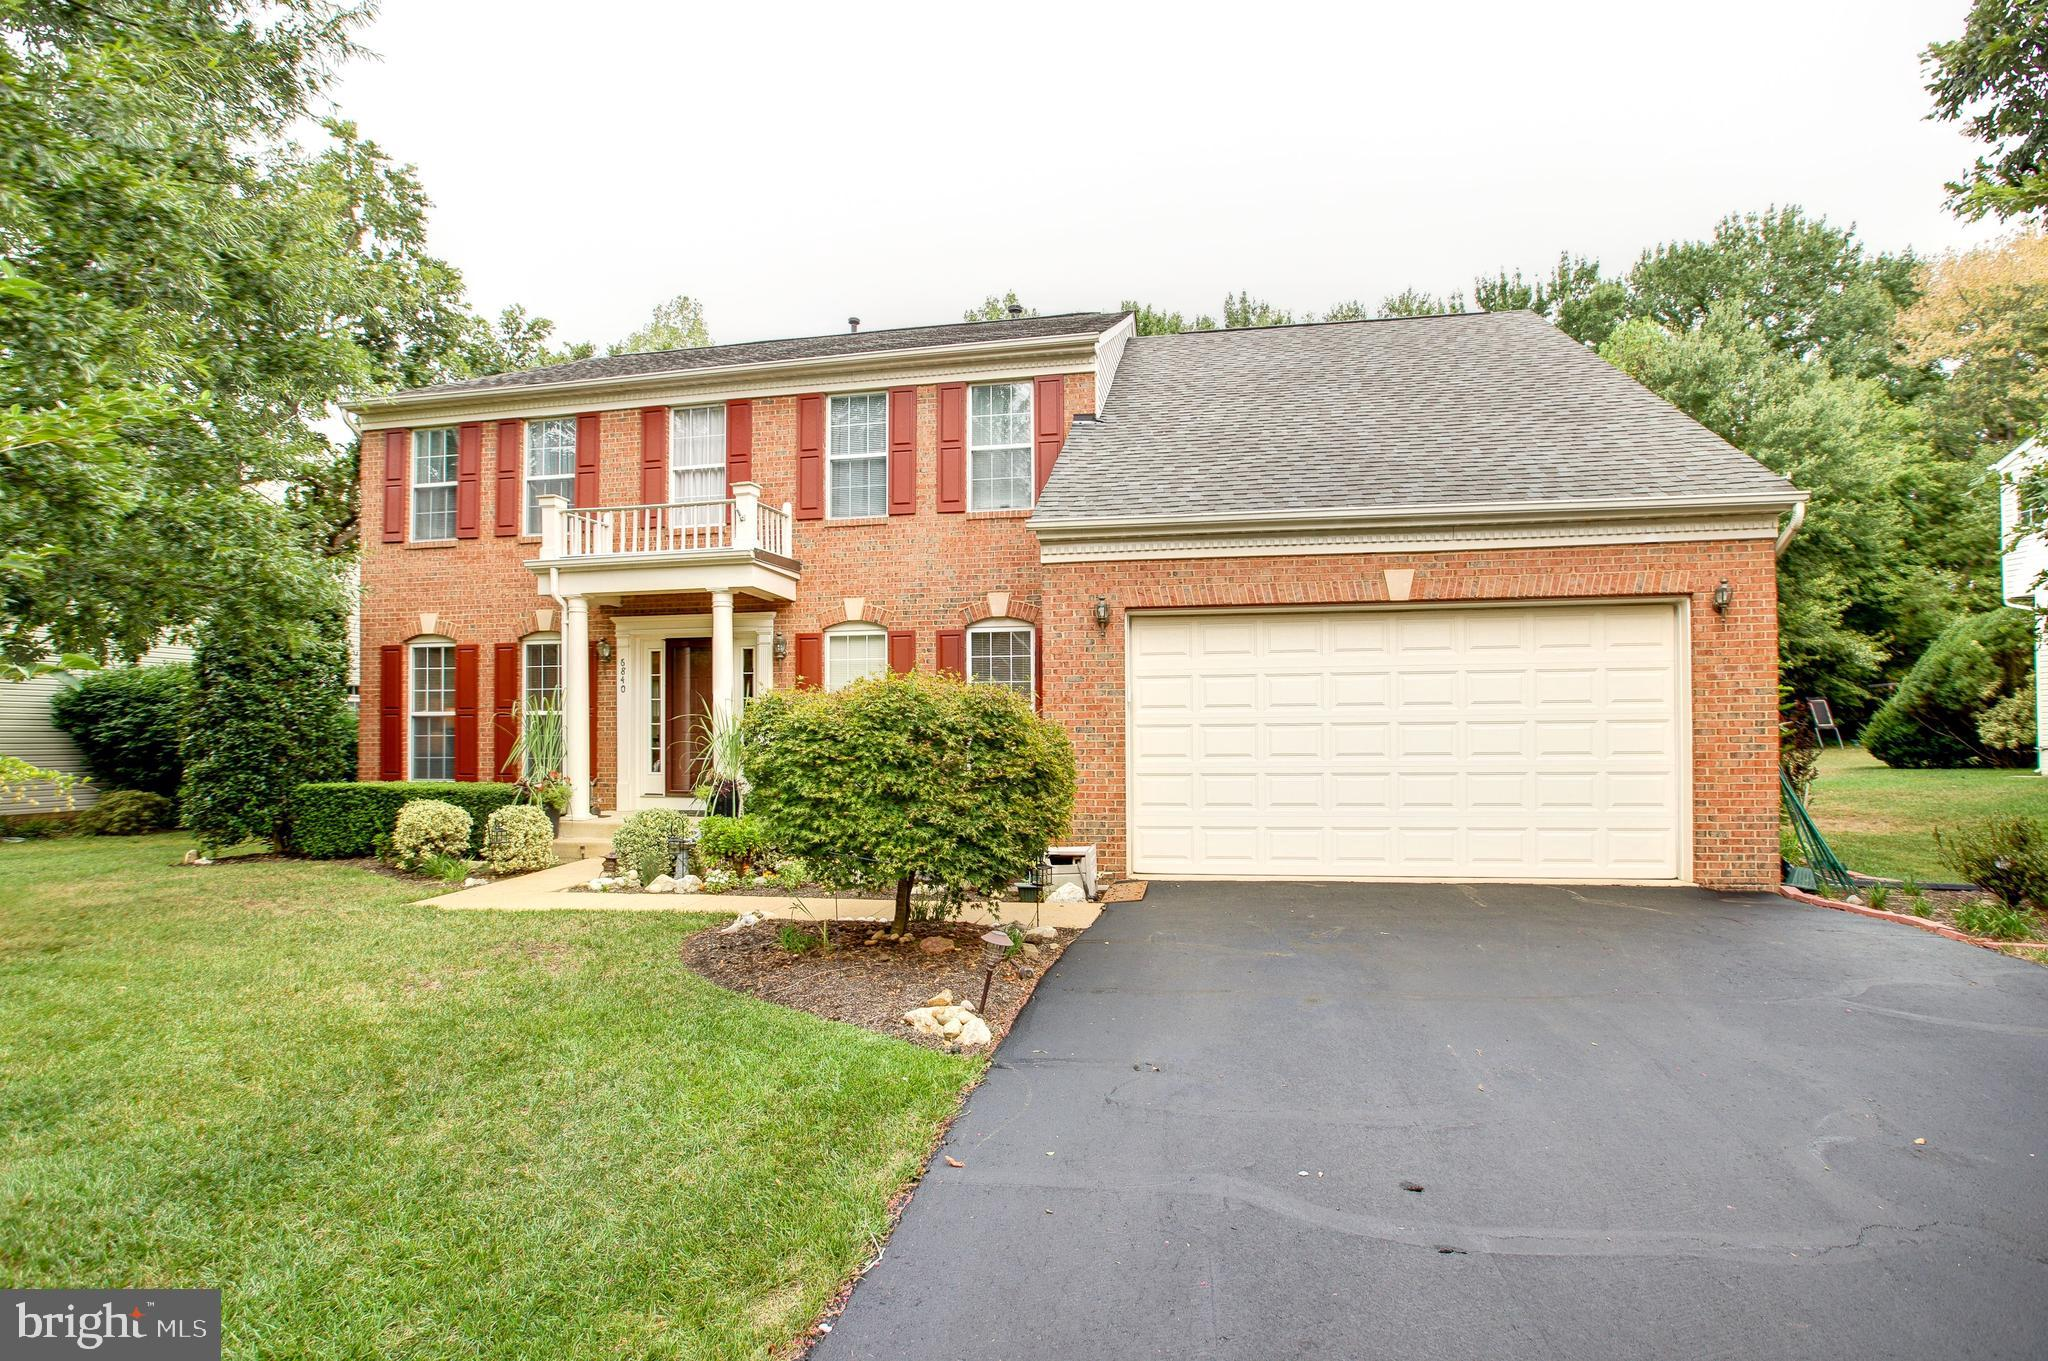 Don't miss this beautiful, brick front colonial tucked away on a quiet cul-de-sac! 6840 Corder is located on a large lot (0.4 acres) backing to an abundant wooded area and as you enter the home, you'll find even more exquisite features! The entryway features a 2 story foyer leading to a stunning open kitchen with an island, table space and a one-of-a kind living room with gleaming acacia hardwoods and vaulted ceilings. The separate dining room and deck off the kitchen make this home an entertainer's dream! Upstairs, you'll find a stunning master suite with spa like baths, acacia walk-in closets, and a remodeled second bath. The basement has rough-ins for a potential additional bathroom or can be used for all of the storage you desire. Gardeners will find a backyard and stone patio brimming with possibilities. This home is also ideally located minutes from FFX County Parkway, I-95, Fort Belvoir, and Kingstowne +Springfield Towne Centers. Schedule a tour today!